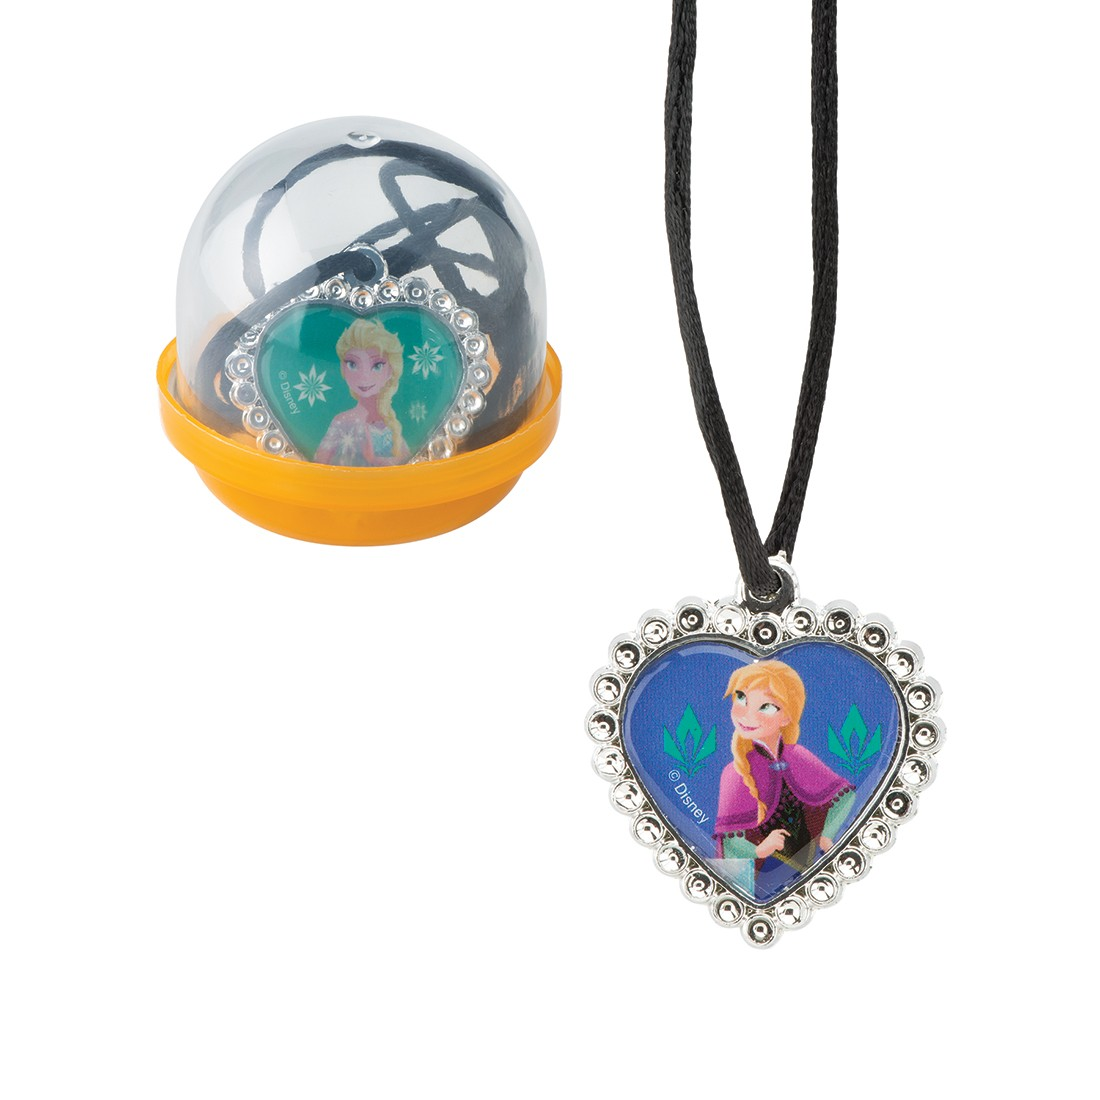 "Disney Frozen Jewel Necklaces in 2"" Capsules [image]"